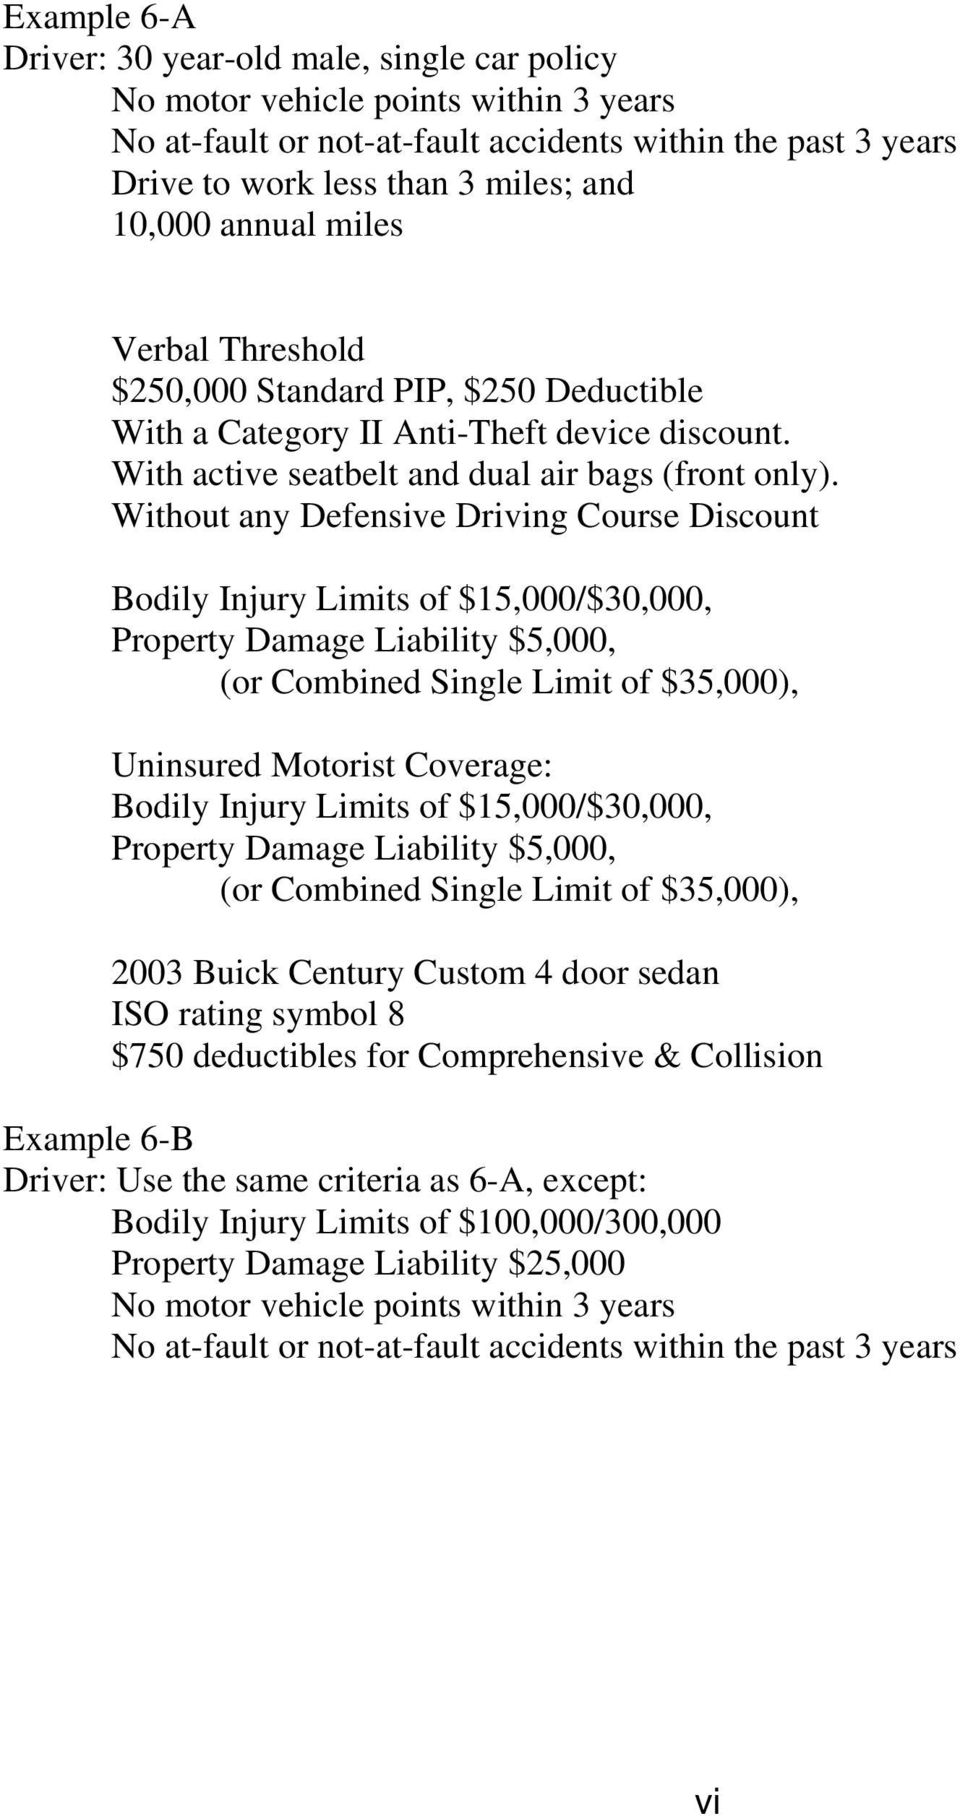 Bodily Injury Limits of $15,000/$30,000, Property Damage Liability $5,000, (or Combined Single Limit of $35,000), Uninsured Motorist Coverage: Bodily Injury Limits of $15,000/$30,000, Property Damage